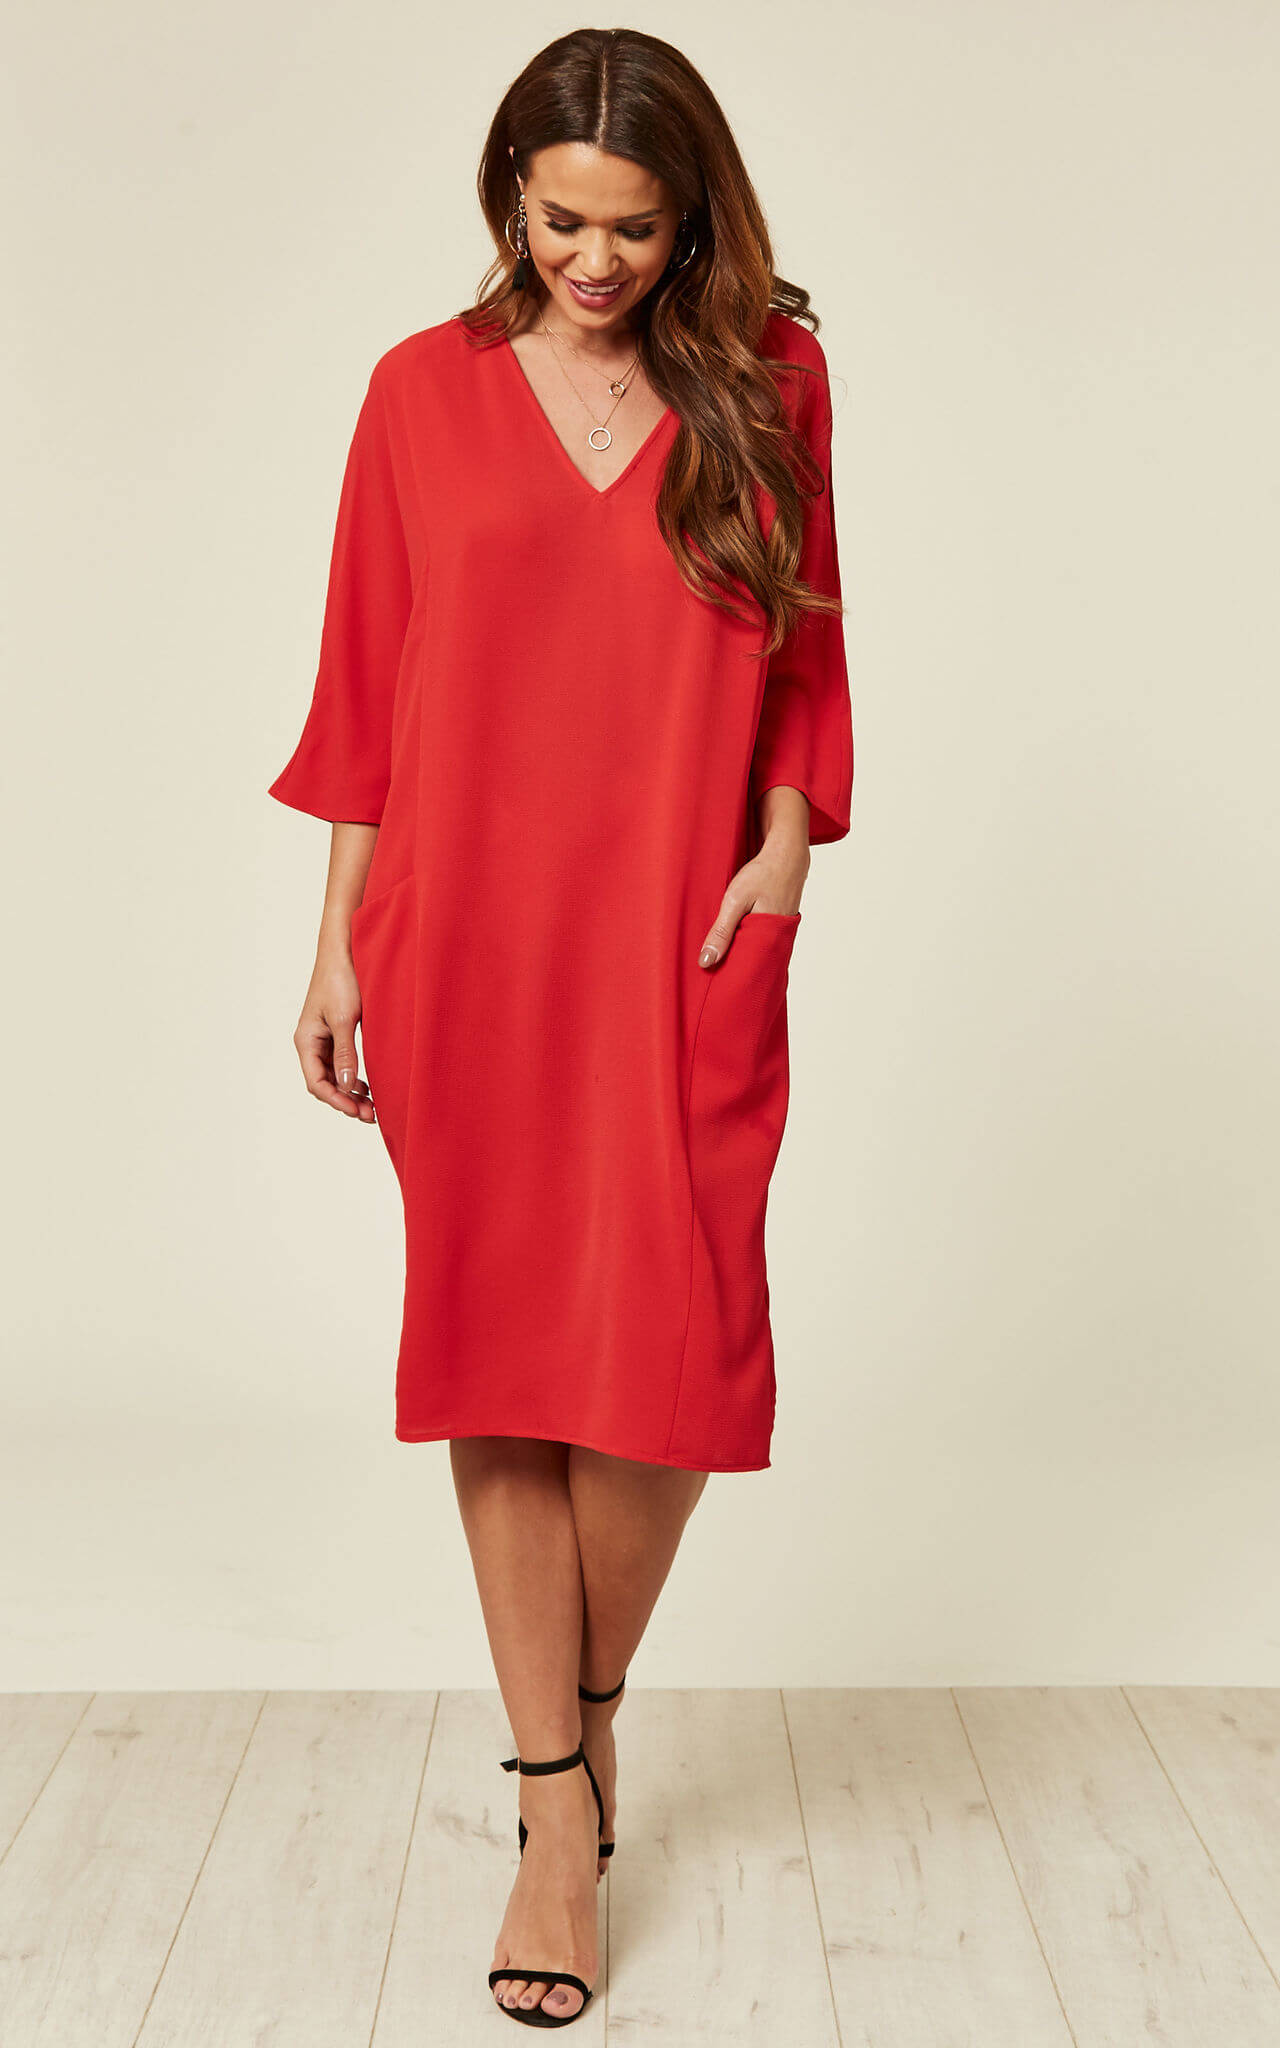 Model wears a red midi dress in relaxed fit with pockets